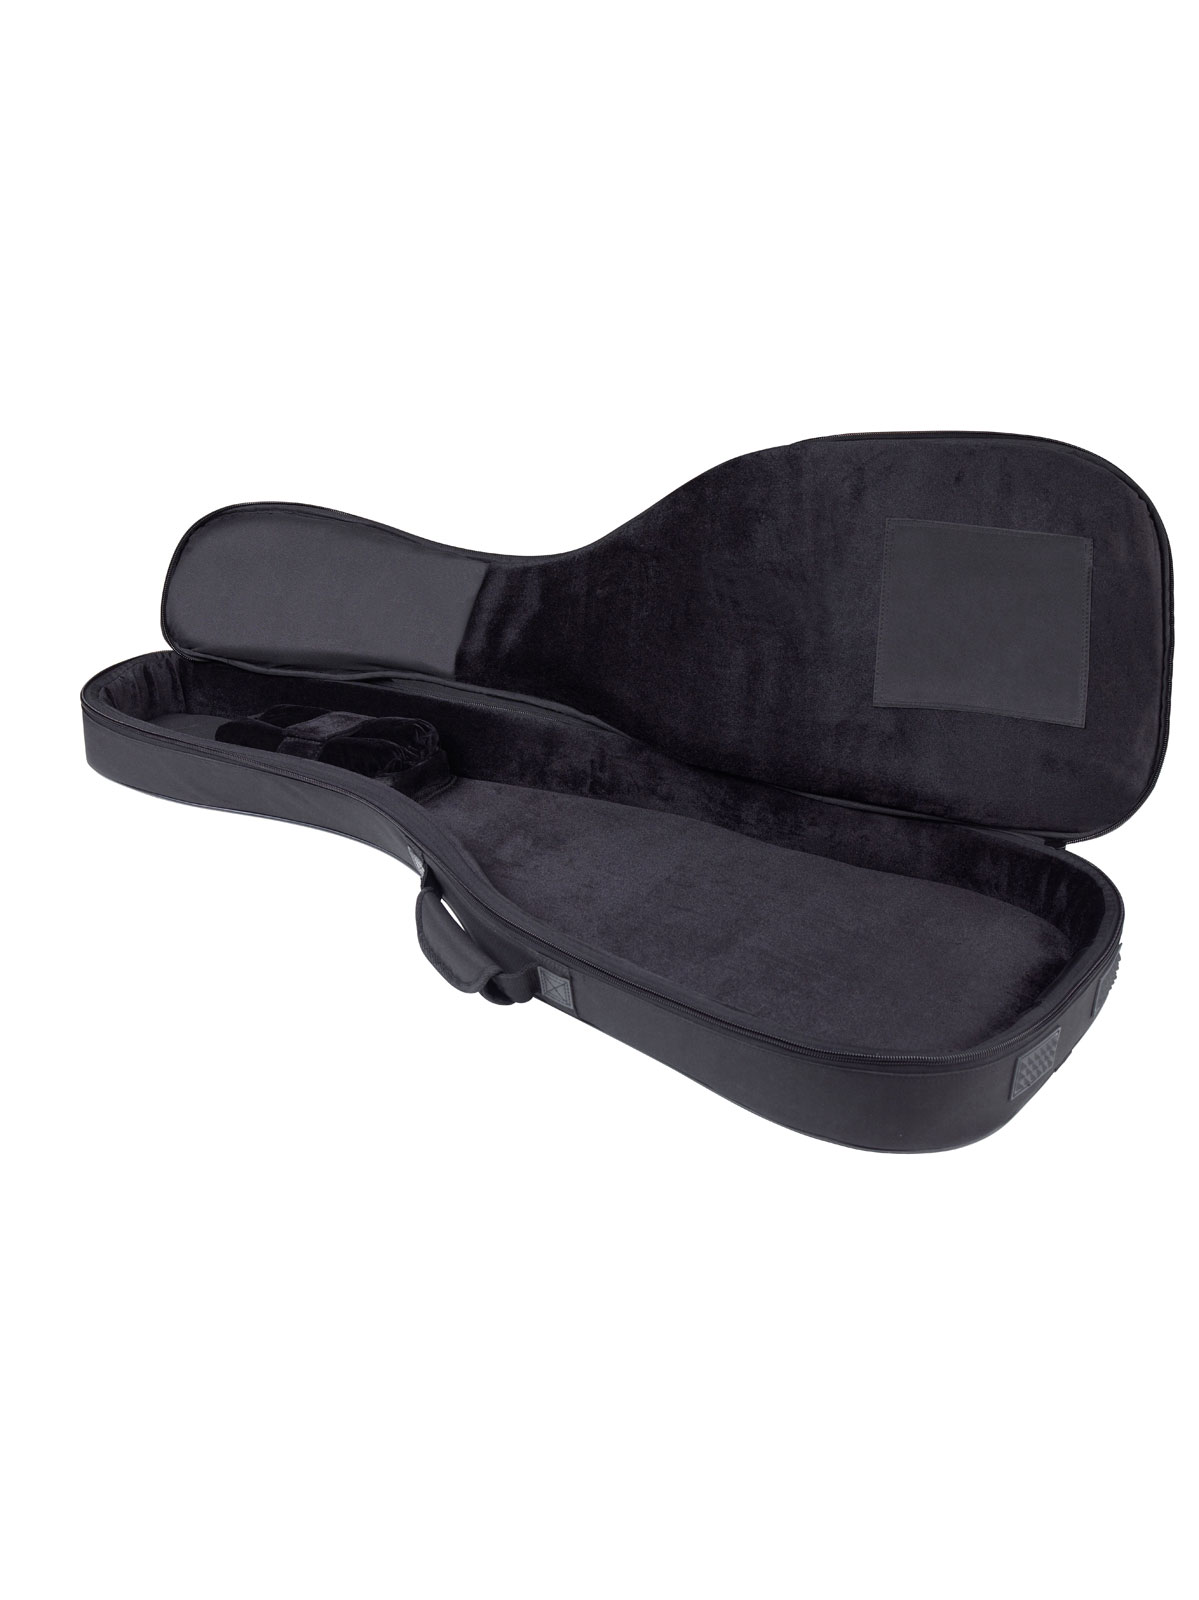 STARLINE - HOLLOW-BODY ELECTRIC GUITAR CASE